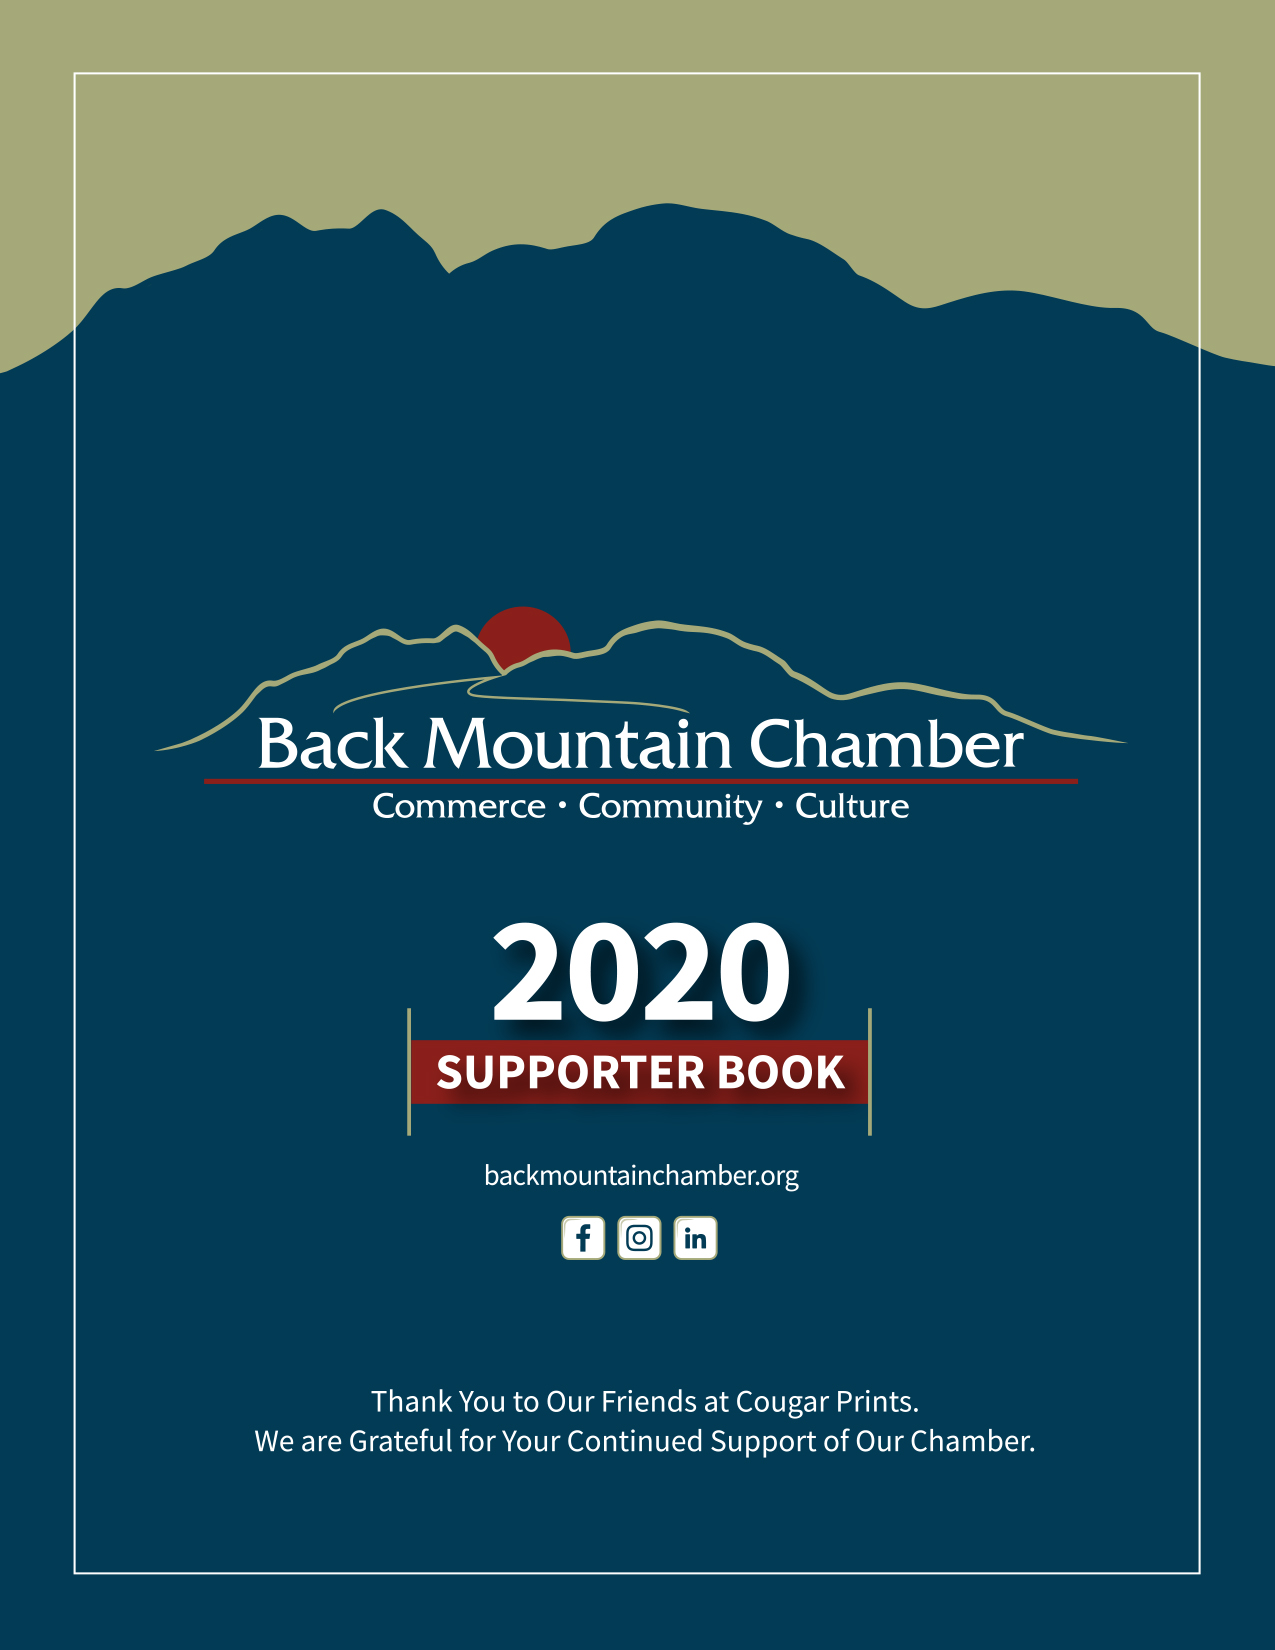 Back Mountain Chamber 2020 Supporter Book